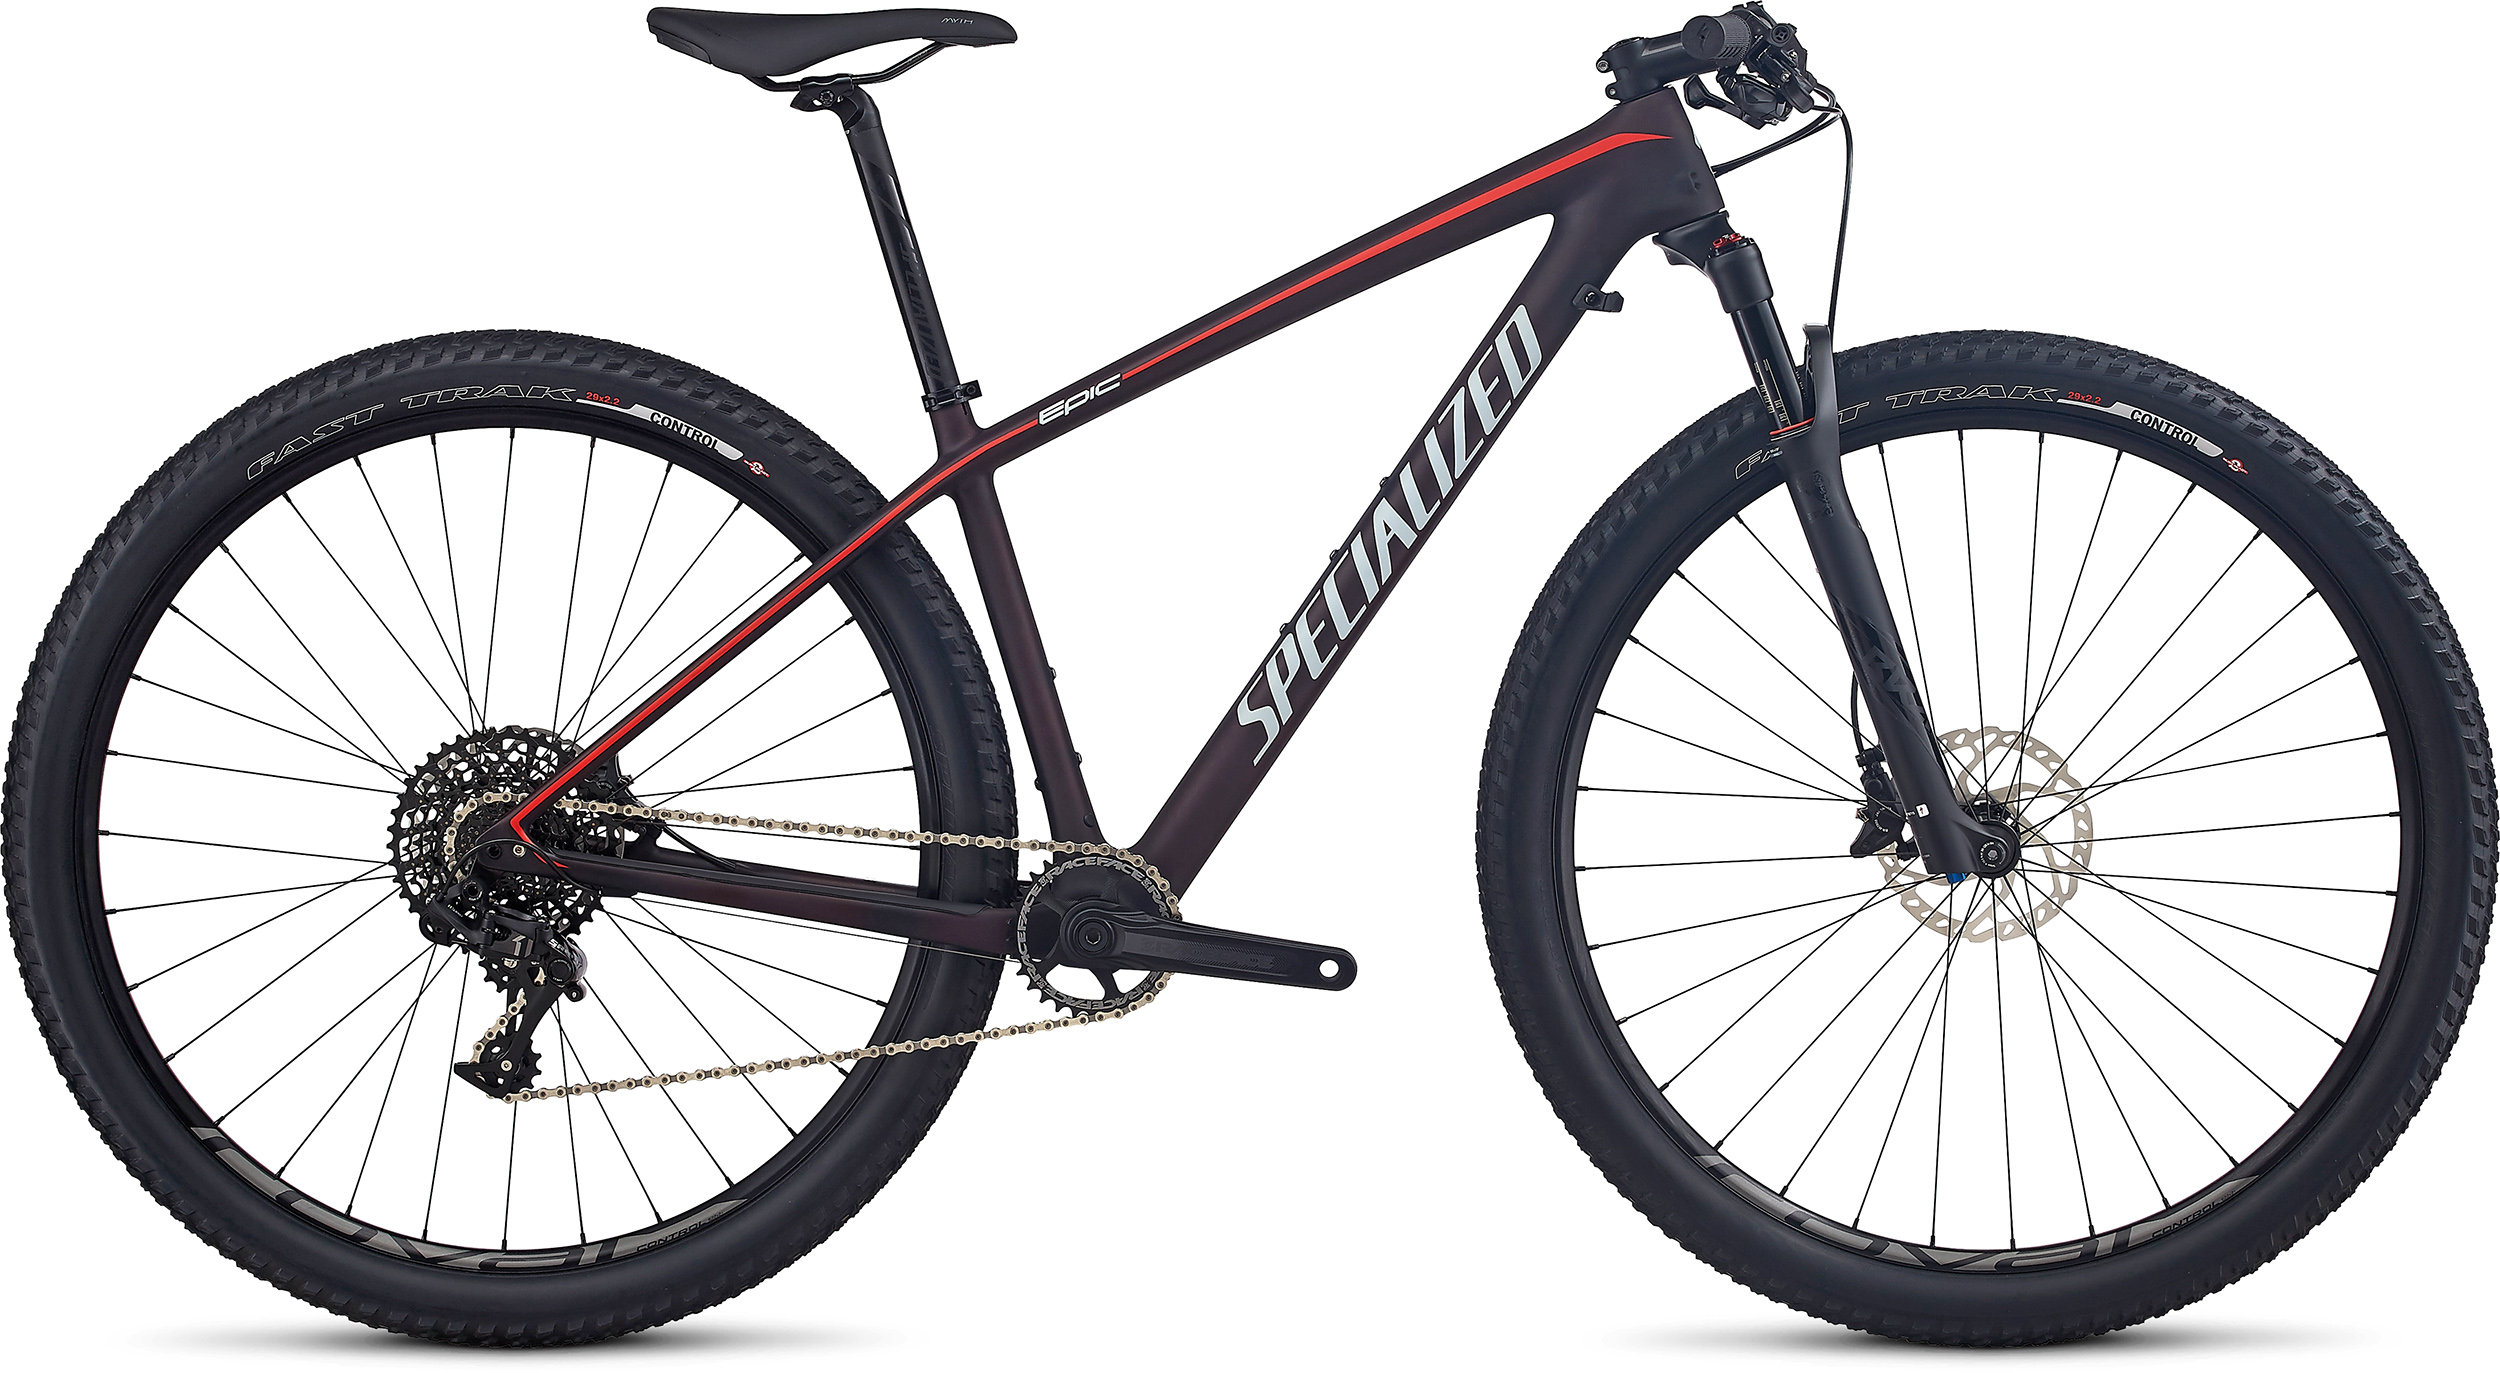 SPECIALIZED EPIC HT WMN EXPERT CARBON WC 29 REDFLKTNT/NRDCRED/BBYBLU XS - Bikedreams & Dustbikes